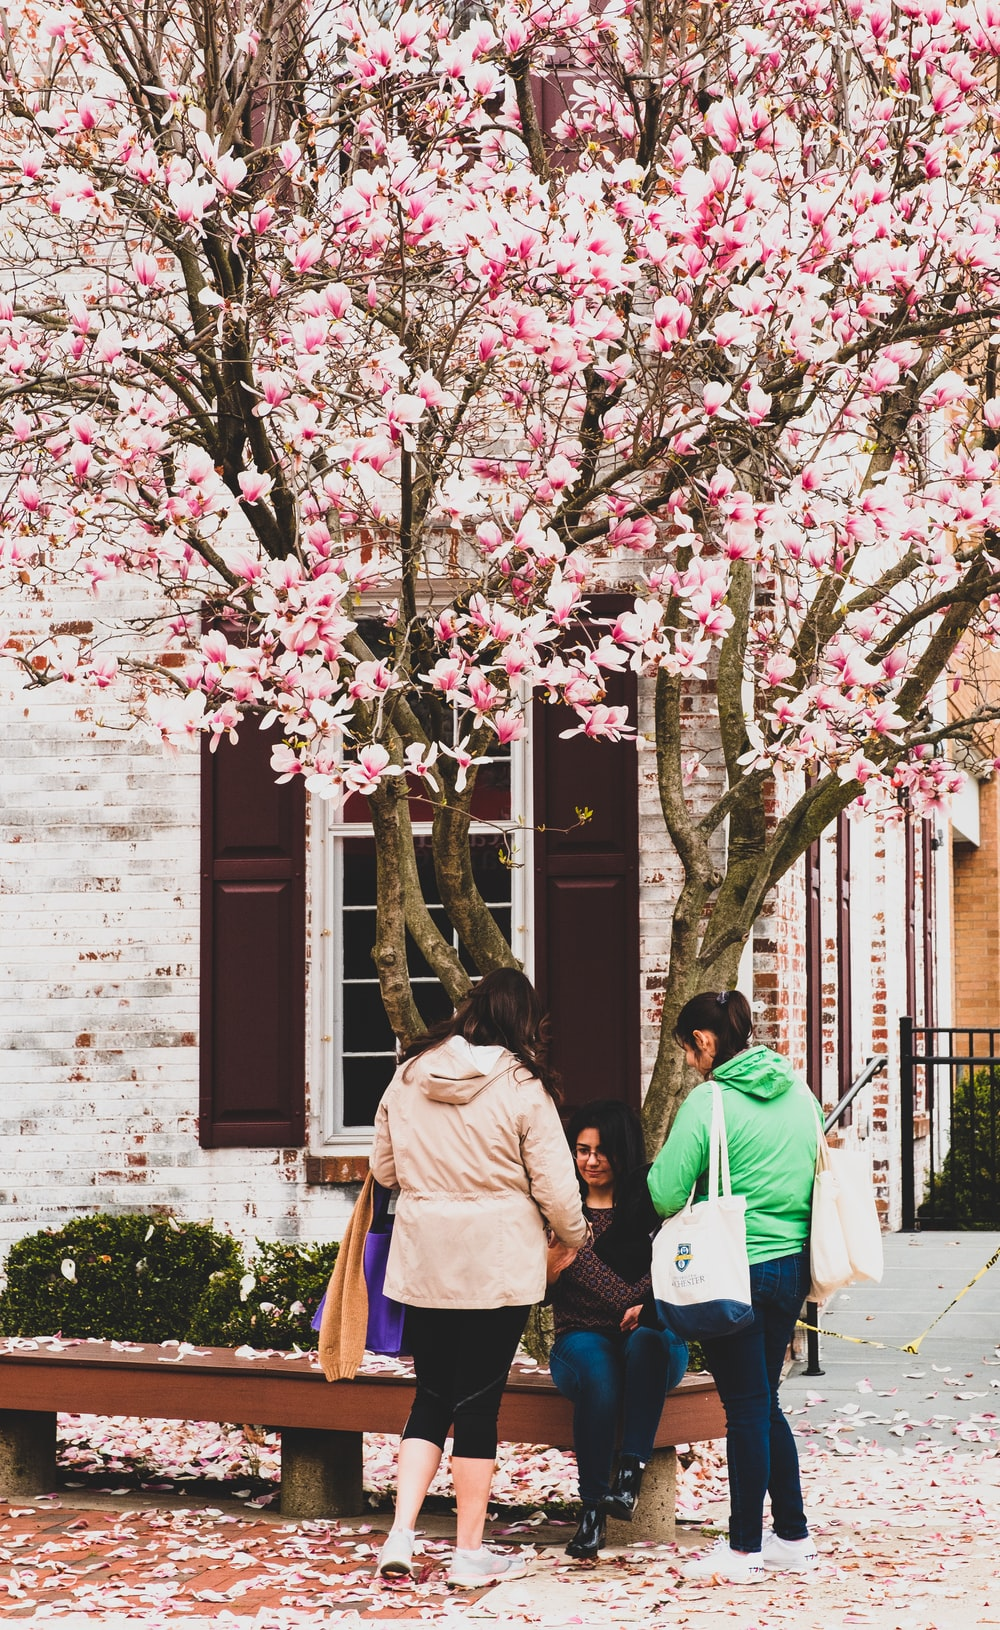 man in green jacket standing near pink cherry blossom tree during daytime